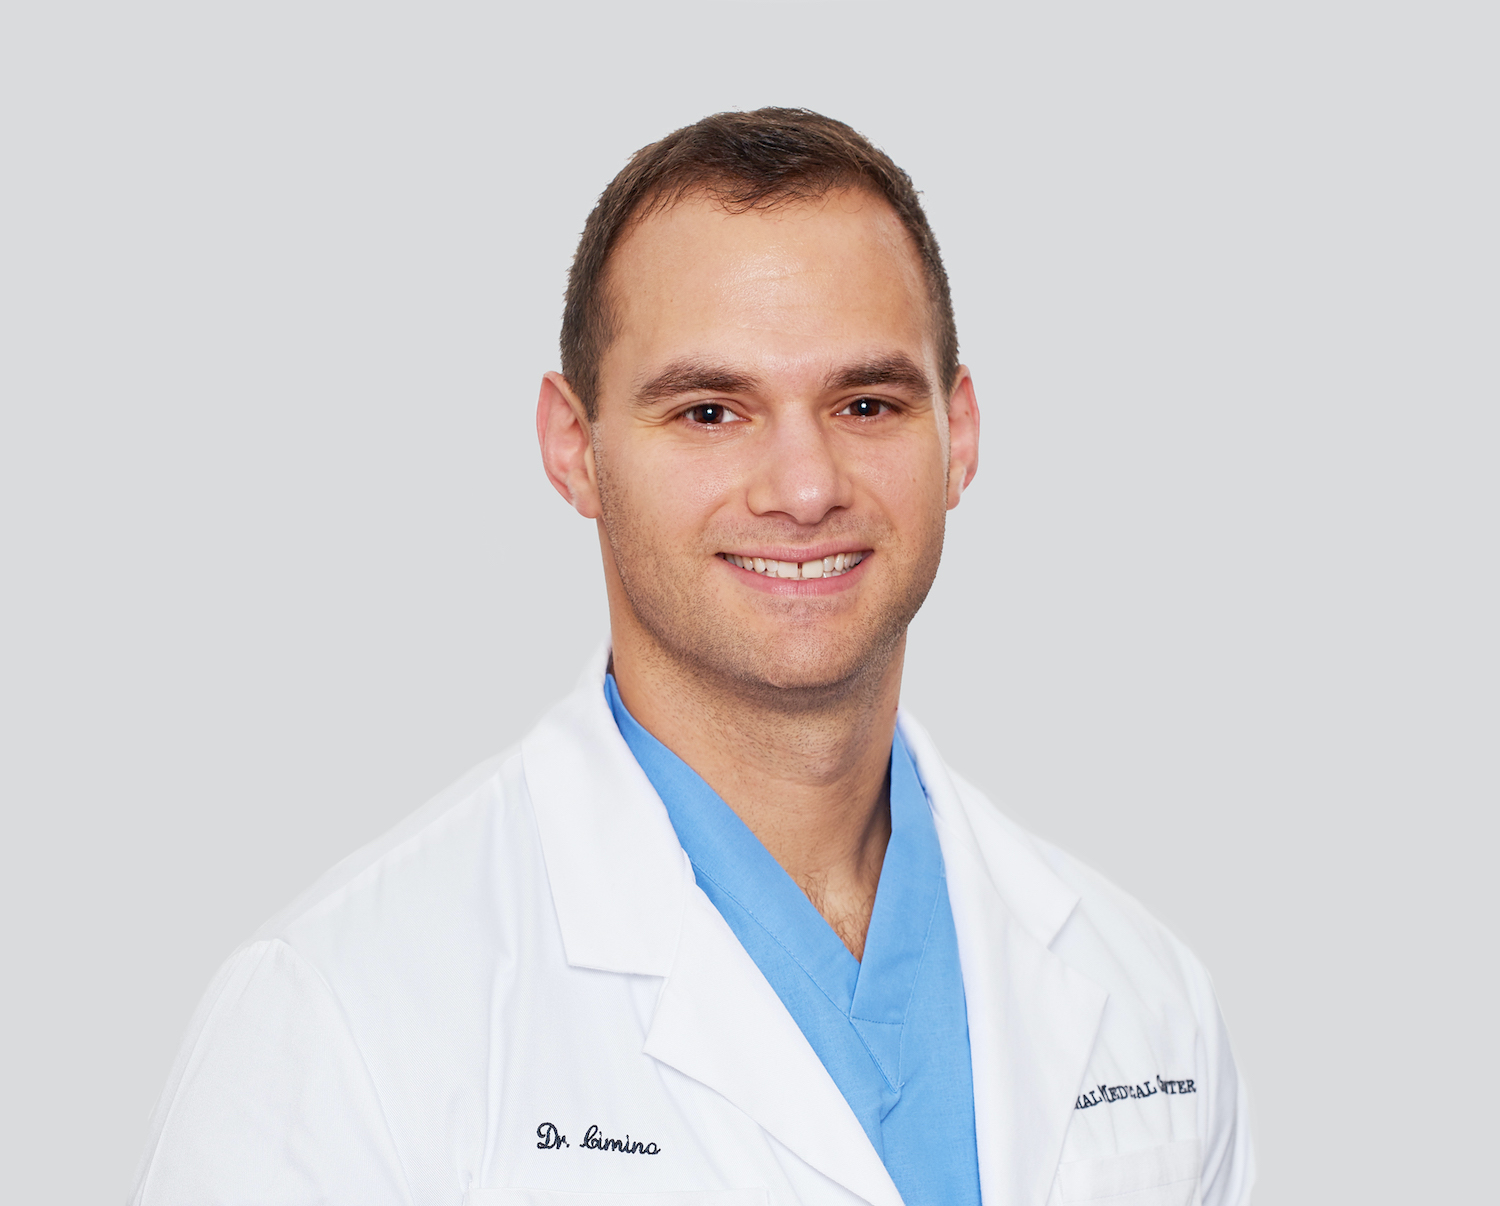 Dr. Daniel Cimino of the Animal Medical Center in New York City